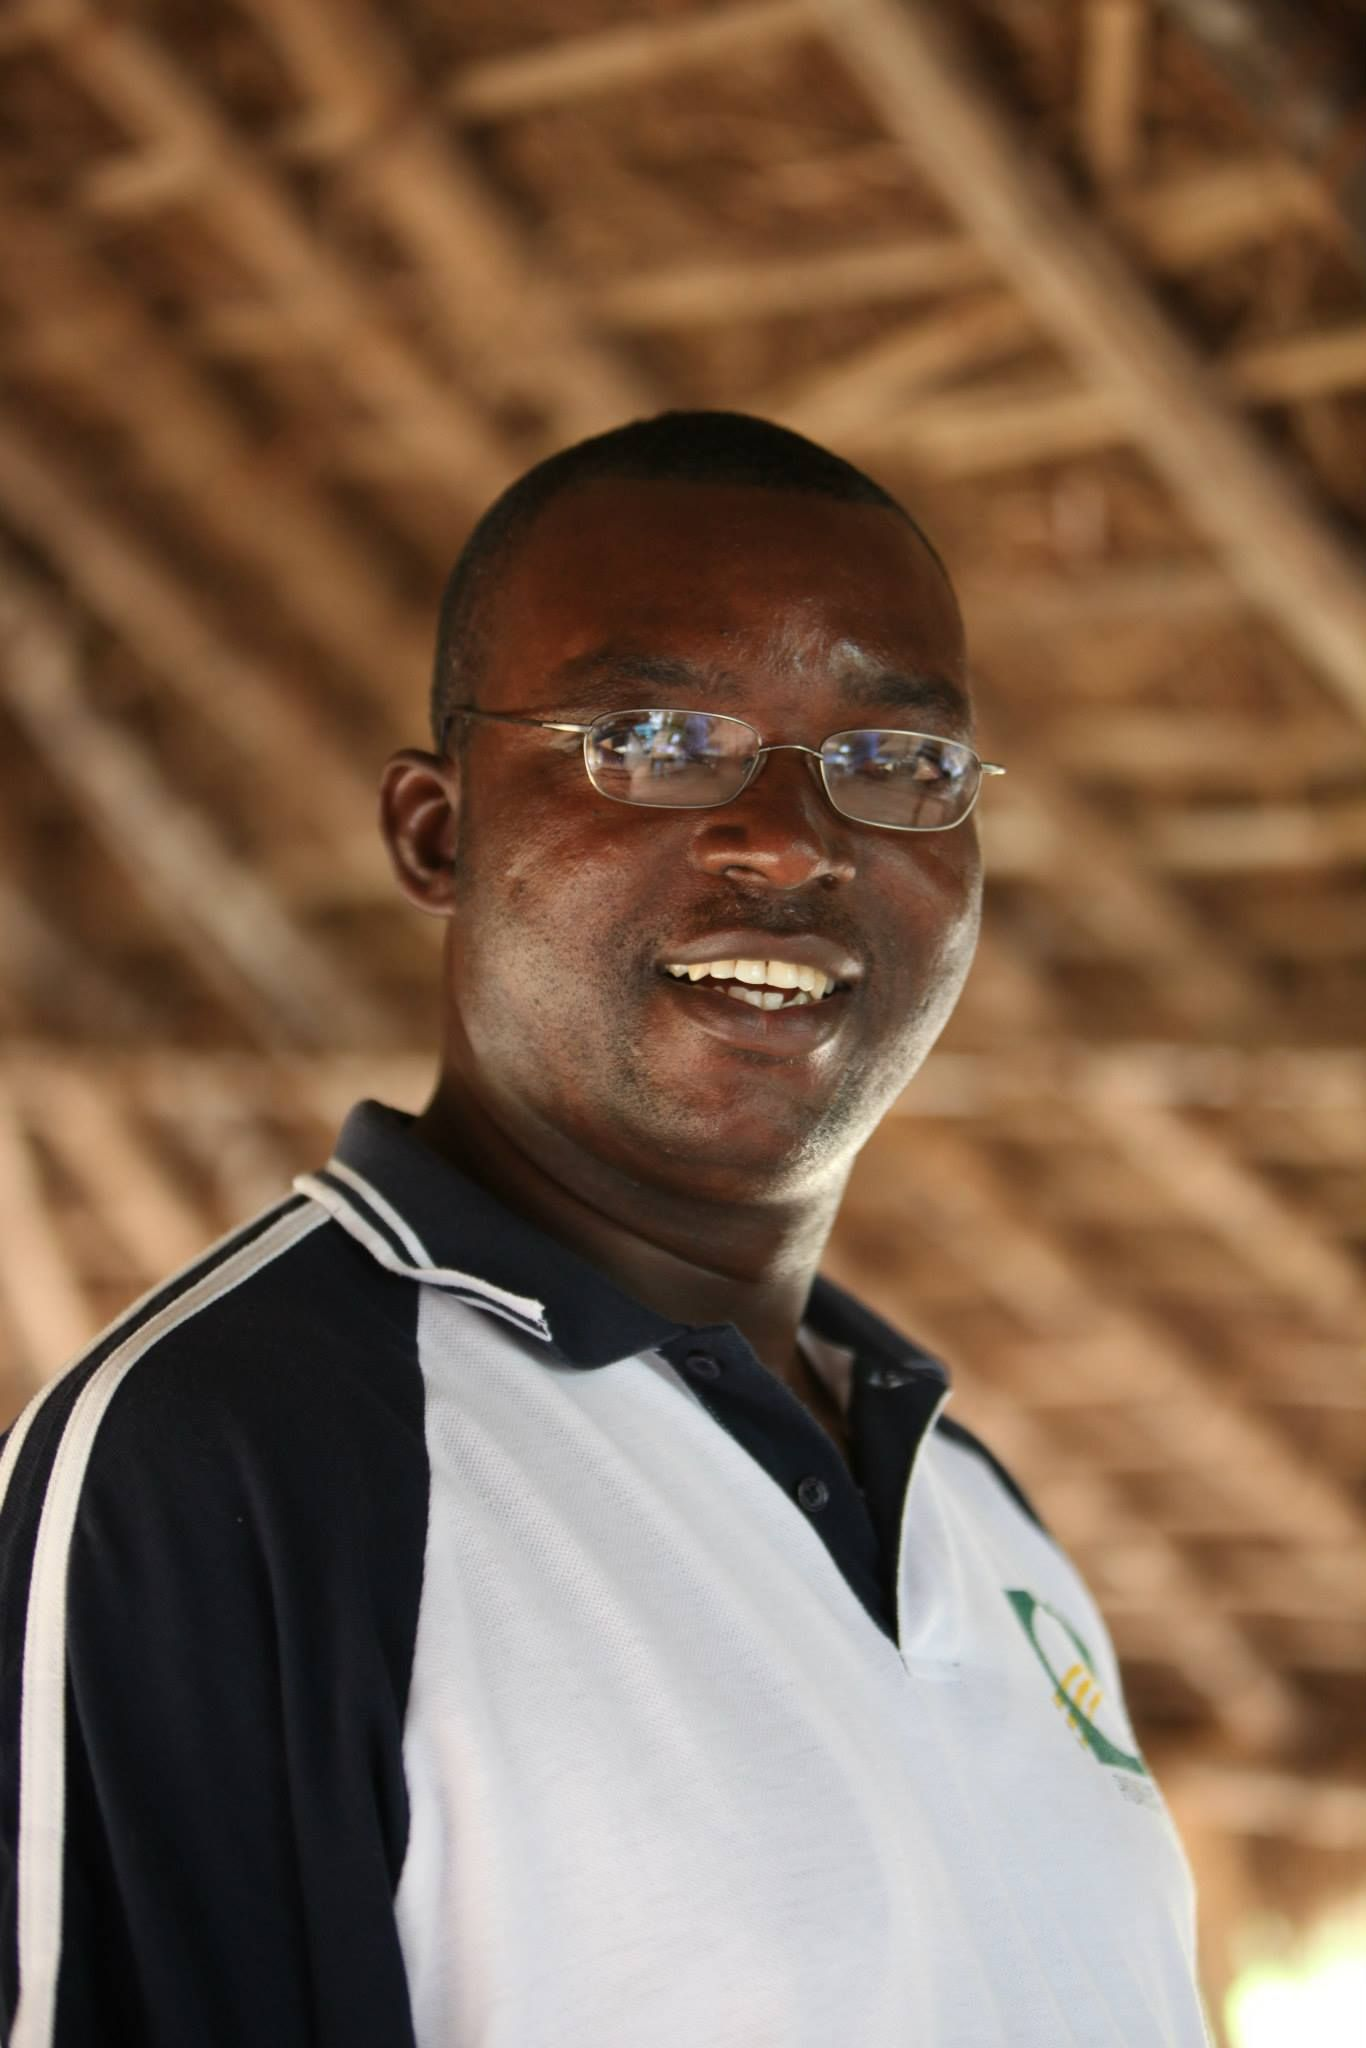 Seacoast: Missions, Togo West Africa Trip.  Our sweet team Pastor Francis Avoyi   https://www.facebook.com/francisavoyi?fref=ts director of Pioneers Togo.